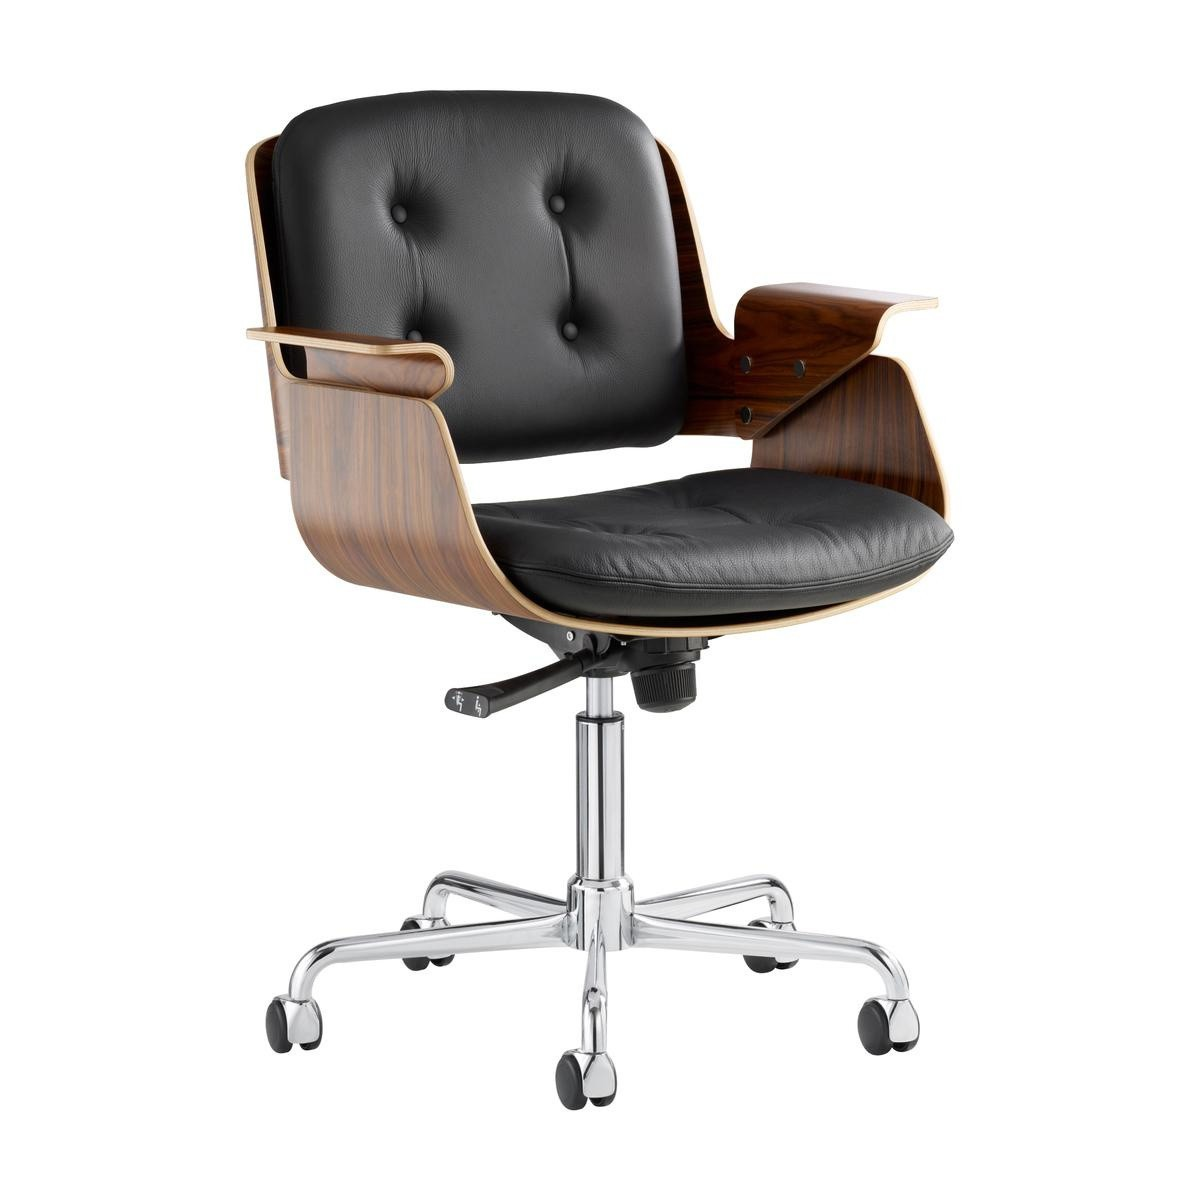 Chair With Wheels >> Tecta D49 Desk Chair With Wheels